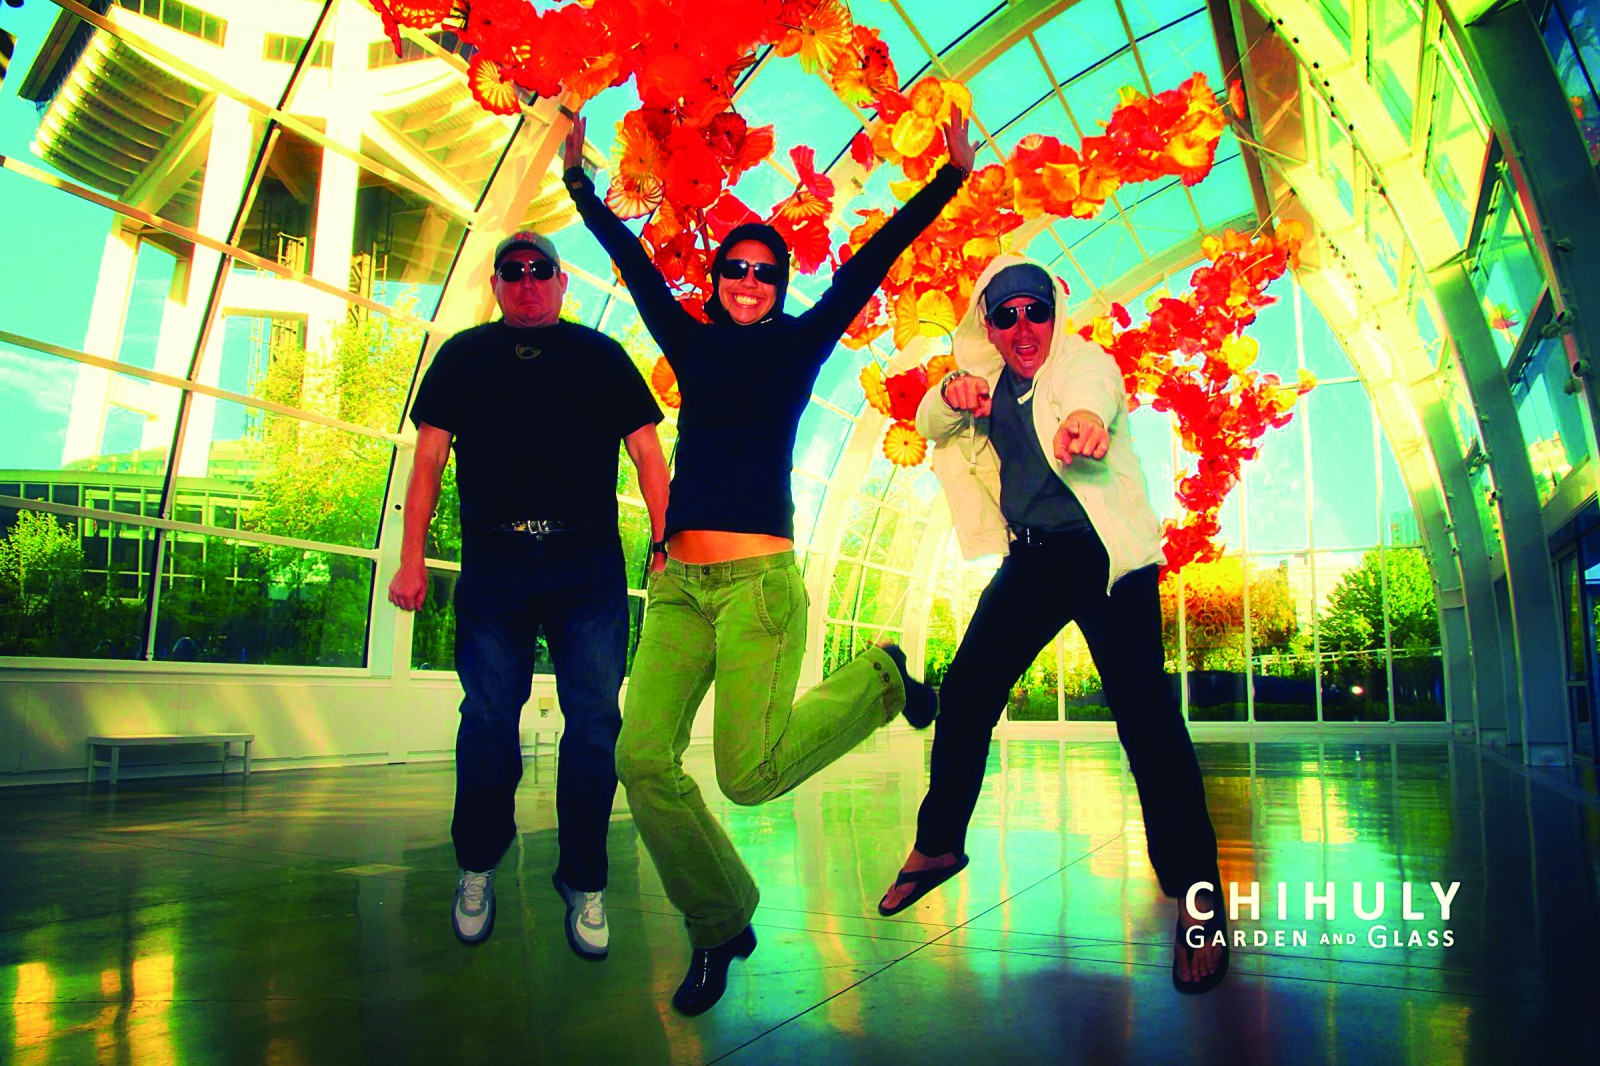 Jumpin' Jive, several of the crew of M/Y SOC had their photo taken at the Seattle Space Needle and Chihuly garden and glass exhibit in Seattle this summer. Photographed in mid-air, from the left, are Chef J Blevins, Stew Layla Jericho and First Mate Scott Fraser. The yacht was in Seattle to take in the sights during the yacht's voyage from Ft. Lauderdale to Alaska.